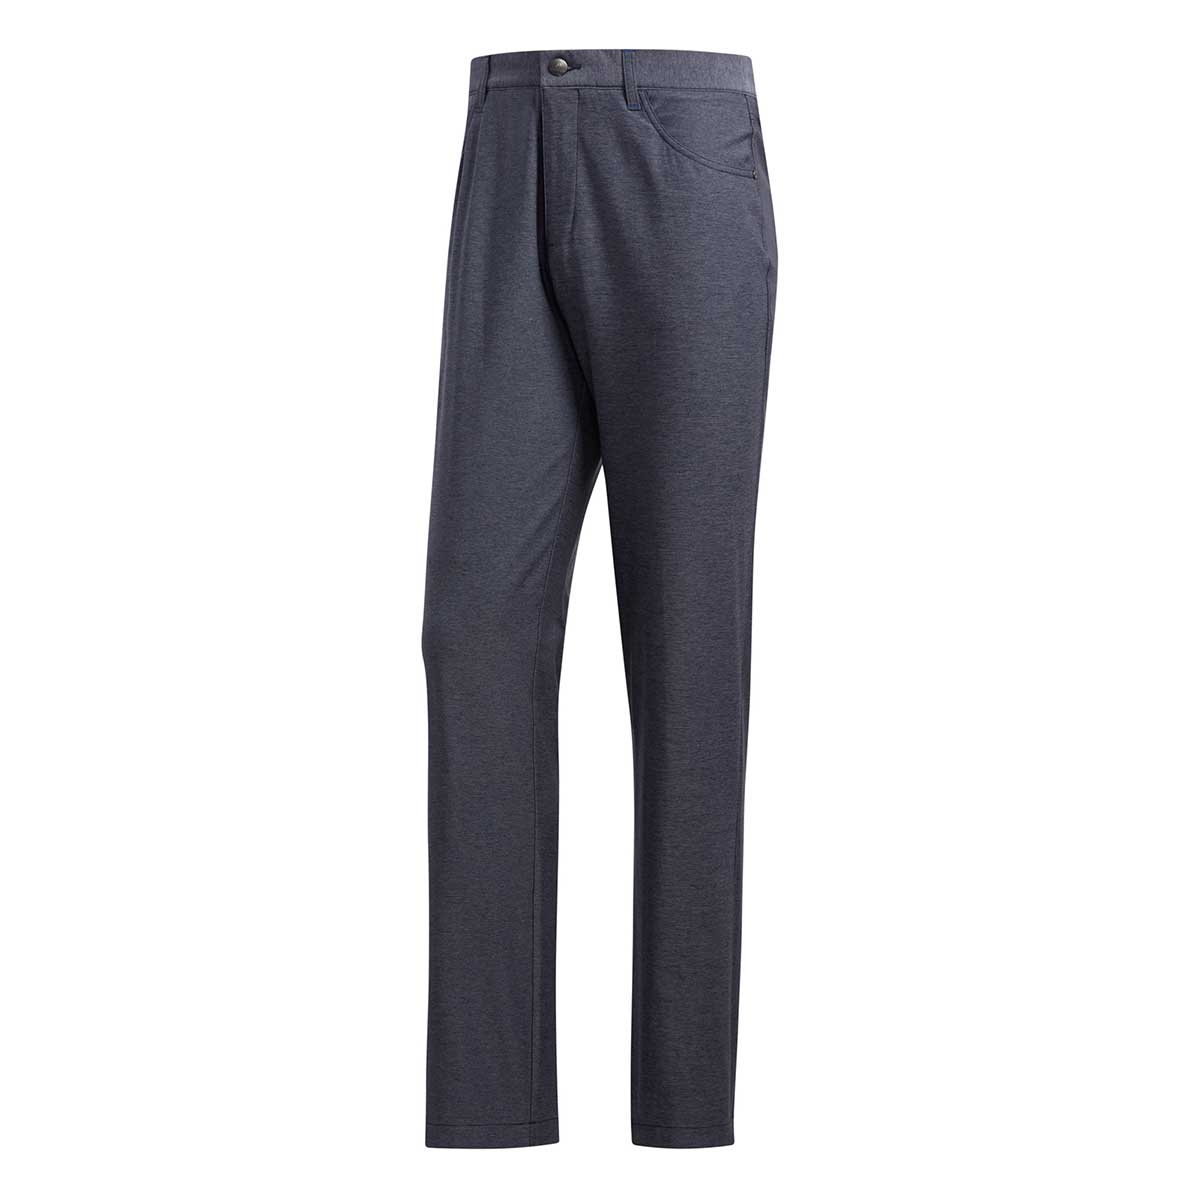 Adidas Ultimate365 Heathered Five-Pocket Collegiate Navy Pants